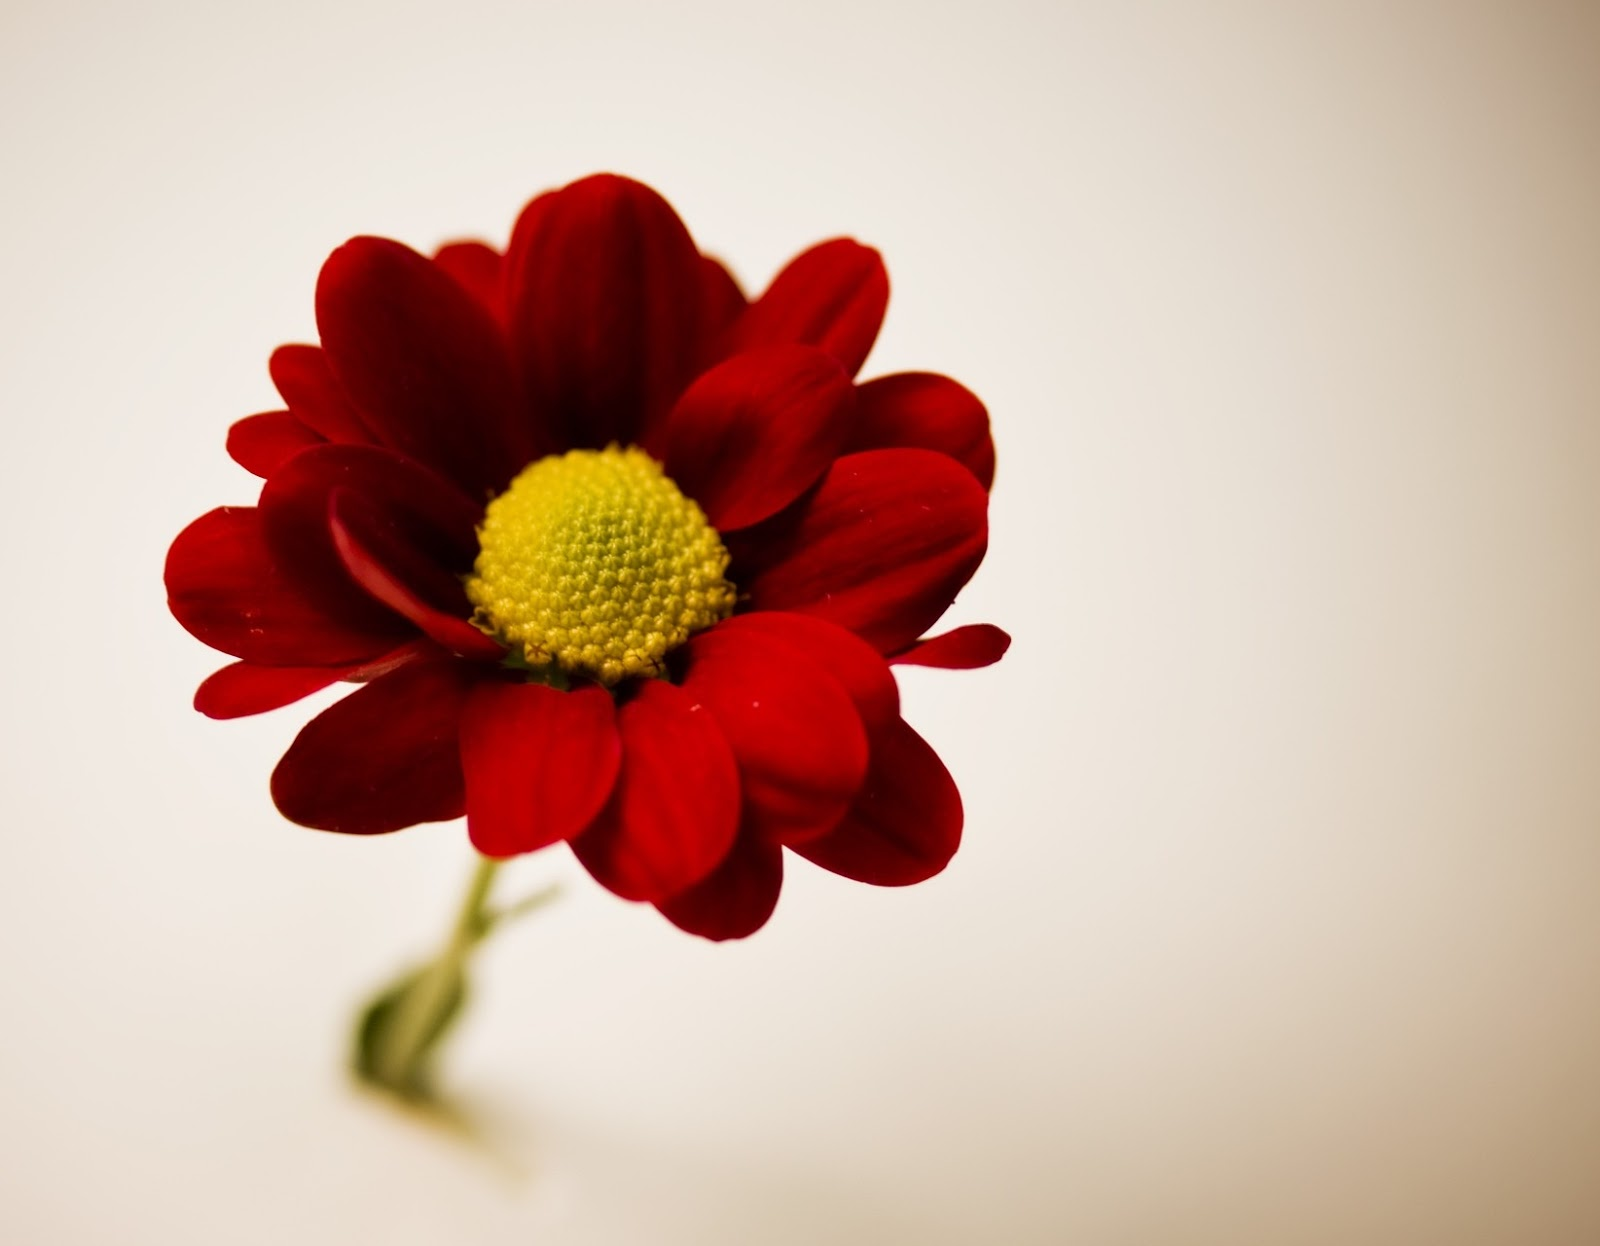 The Color Is Obviously Strongest Point Of Contrast Here Vibrant Red Hue Flower Against Lighter Tanner Background Brings Our Eye Right